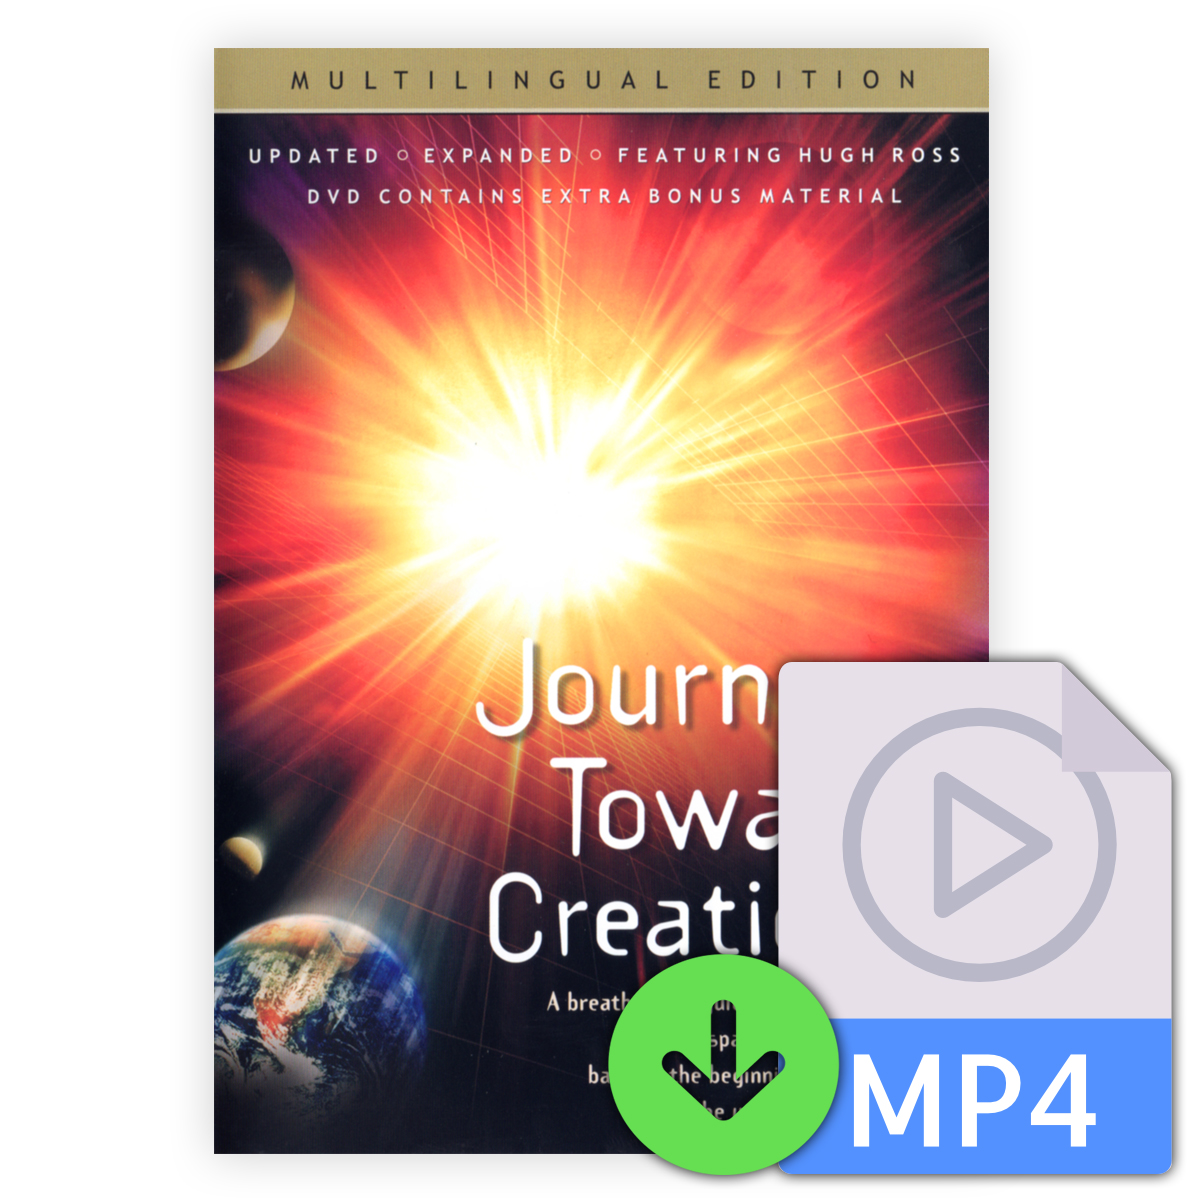 Journey Toward Creation [Downloadable Video] Image